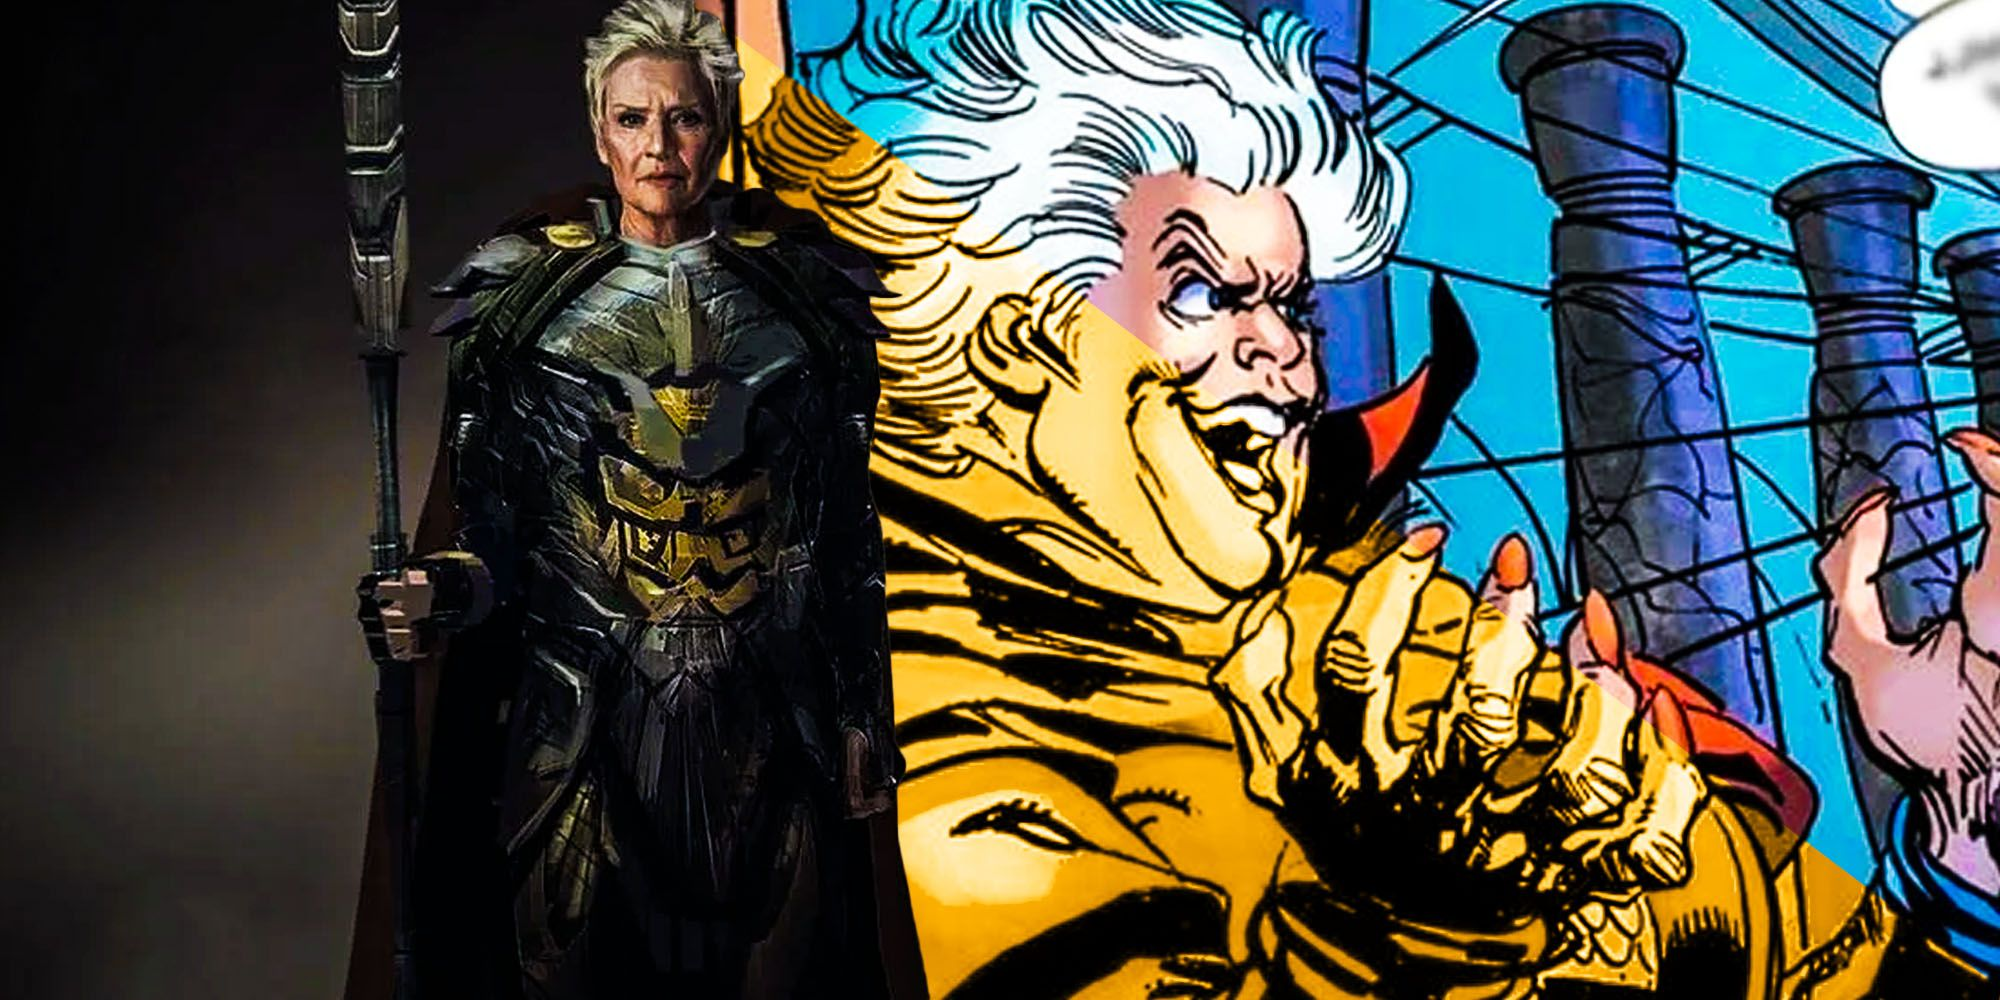 Why The Snyder Cut's Granny Goodness Looks So Different To The Comics